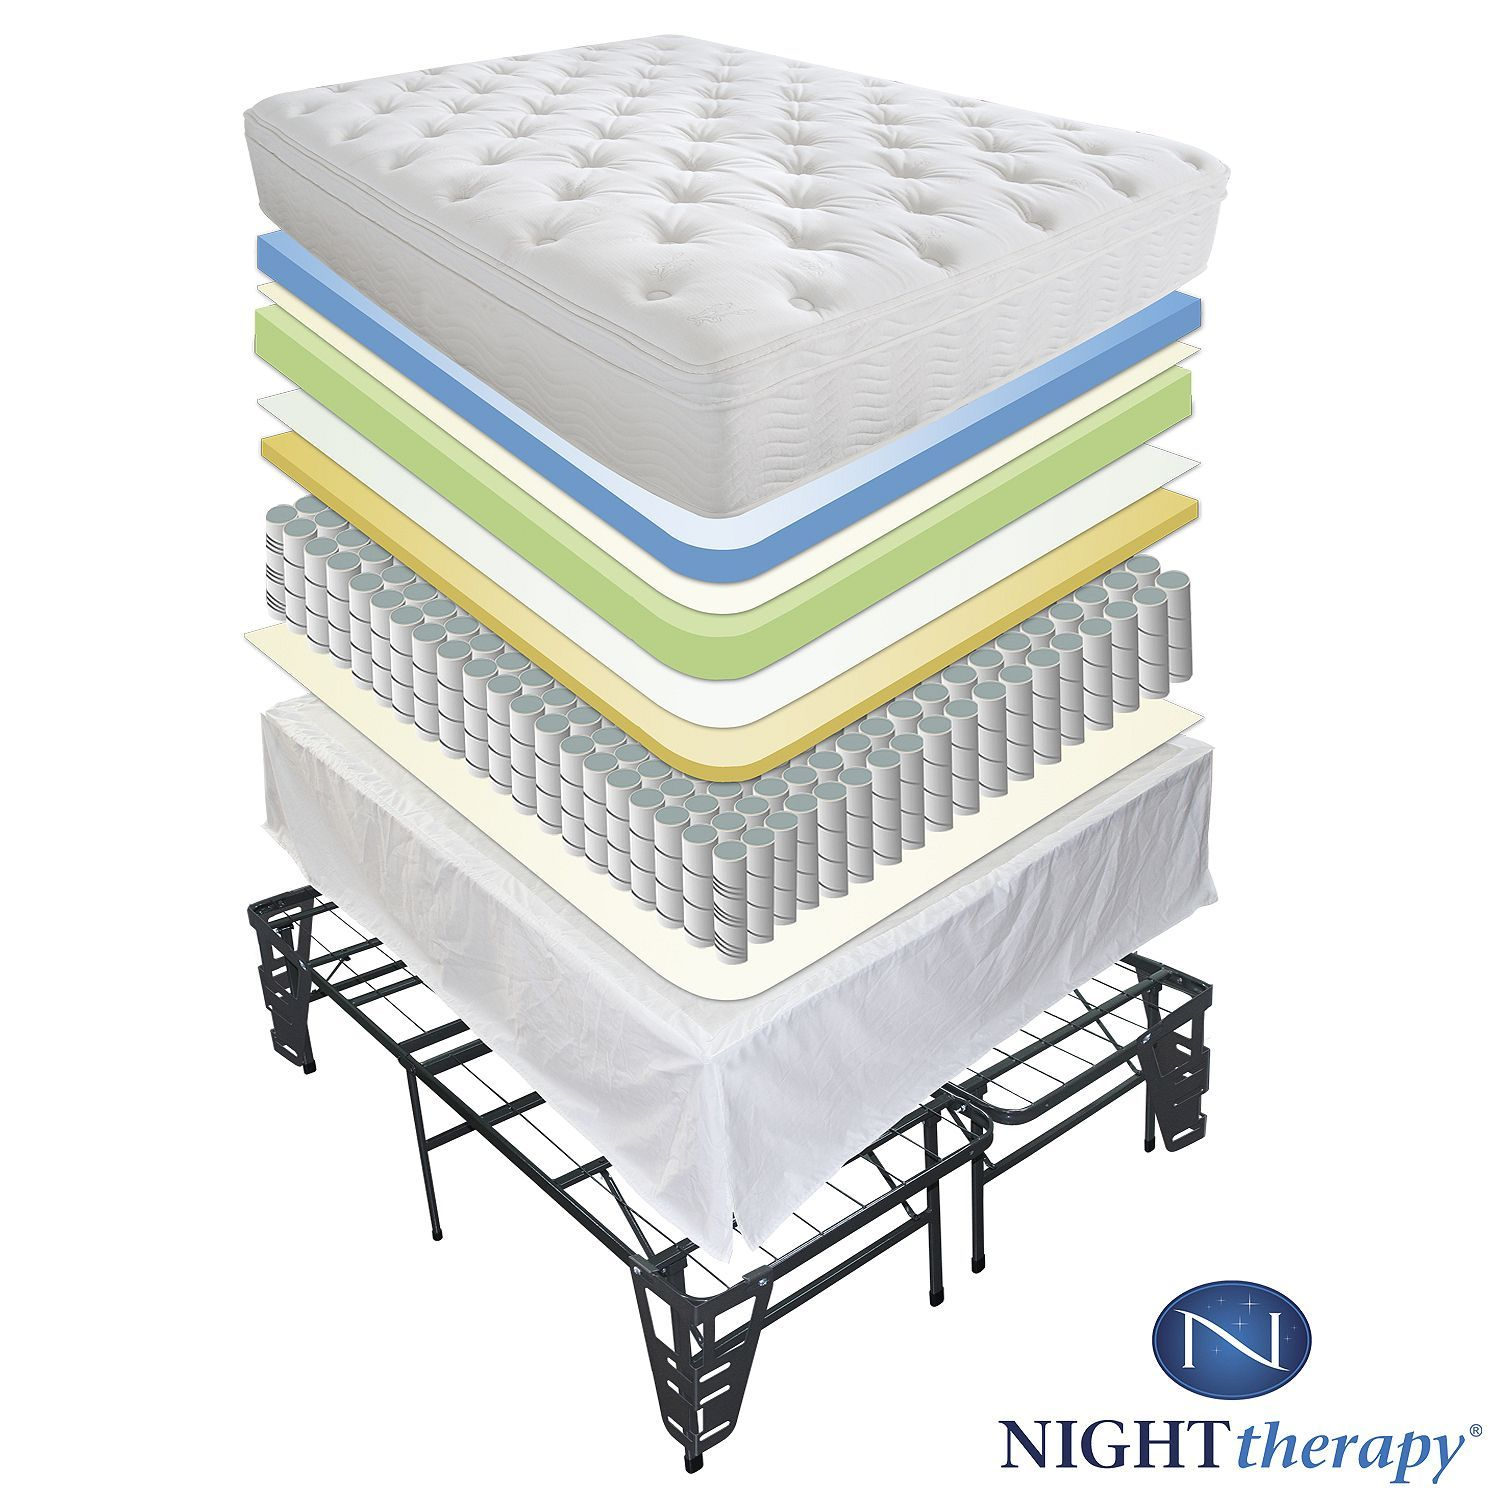 Zinus Night Therapy Icoil 12 Euro Boxtop Spring Mattress And Smartbase Bed Frame Set King Bed Frame Headboard Footboard Mattress